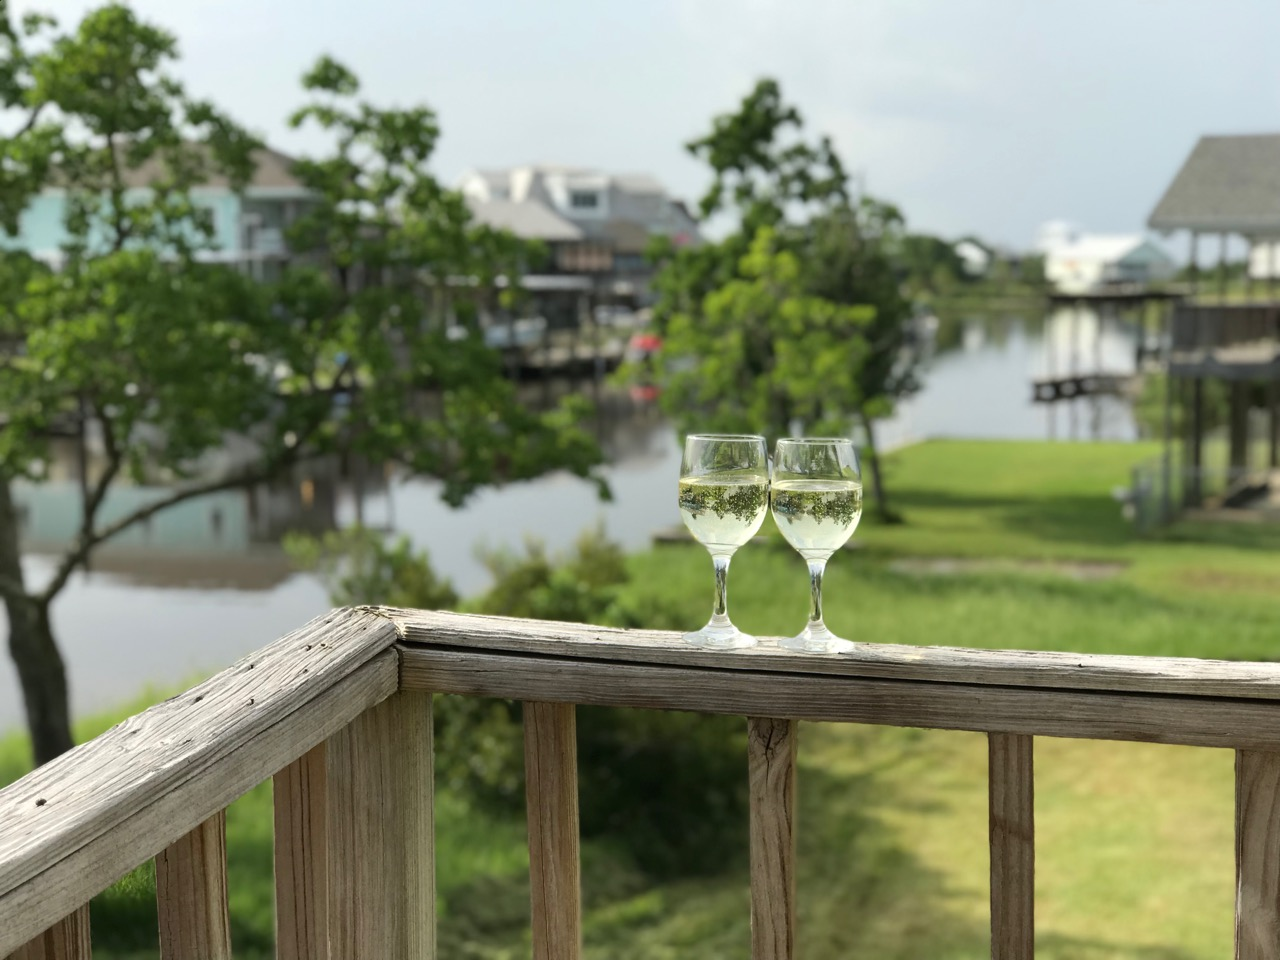 By the Water: The Best Way to Relax (Introducing Gumbo Cove)